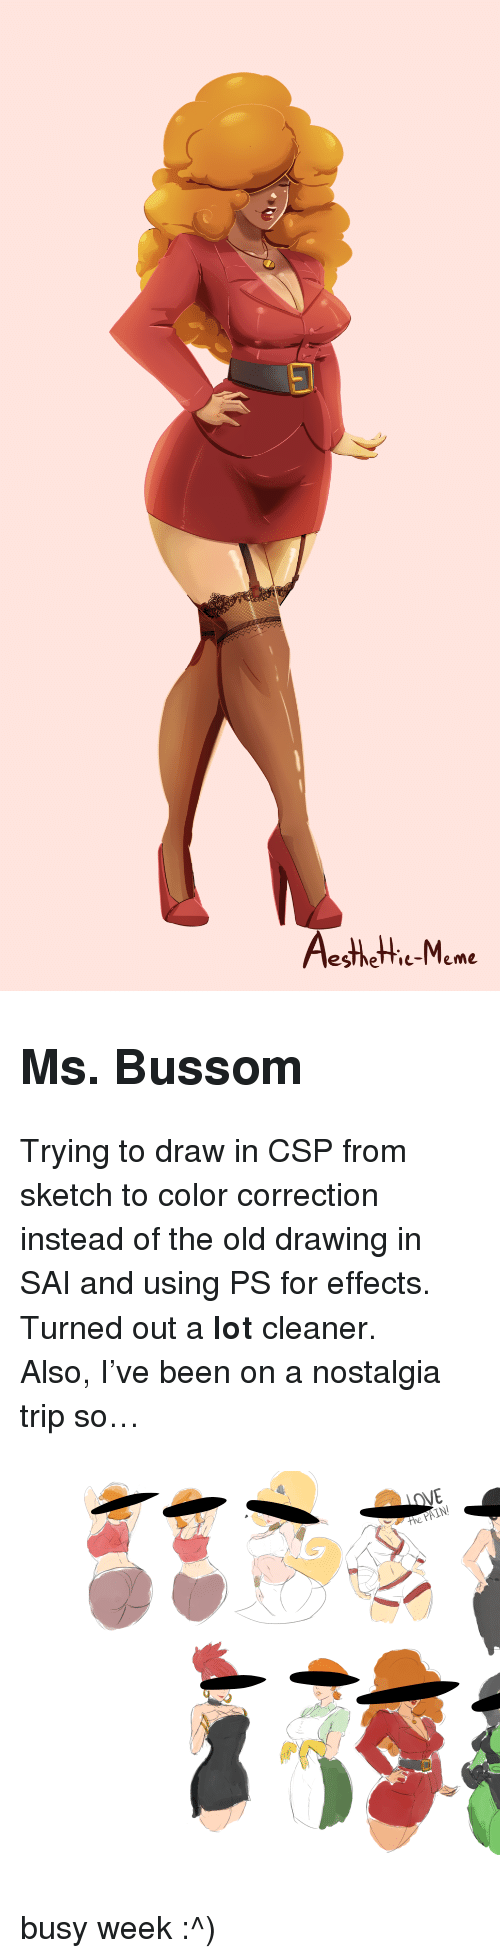 """Correction: esthetie-Meme <h2><b>Ms. Bussom</b></h2><p>Trying to draw in CSP from sketch to color correction instead of the old drawing in SAI and using PS for effects. Turned out a <b>lot</b> cleaner.</p><p>Also, I've been on a nostalgia trip so&hellip;</p><figure class=""""tmblr-full"""" data-orig-height=""""7313"""" data-orig-width=""""10073""""><img src=""""https://78.media.tumblr.com/280b587b6197f92252b7e23116986d17/tumblr_inline_p5svm2oTcJ1sdoznj_540.png"""" data-orig-height=""""7313"""" data-orig-width=""""10073""""/></figure><p>busy week :^)</p>"""